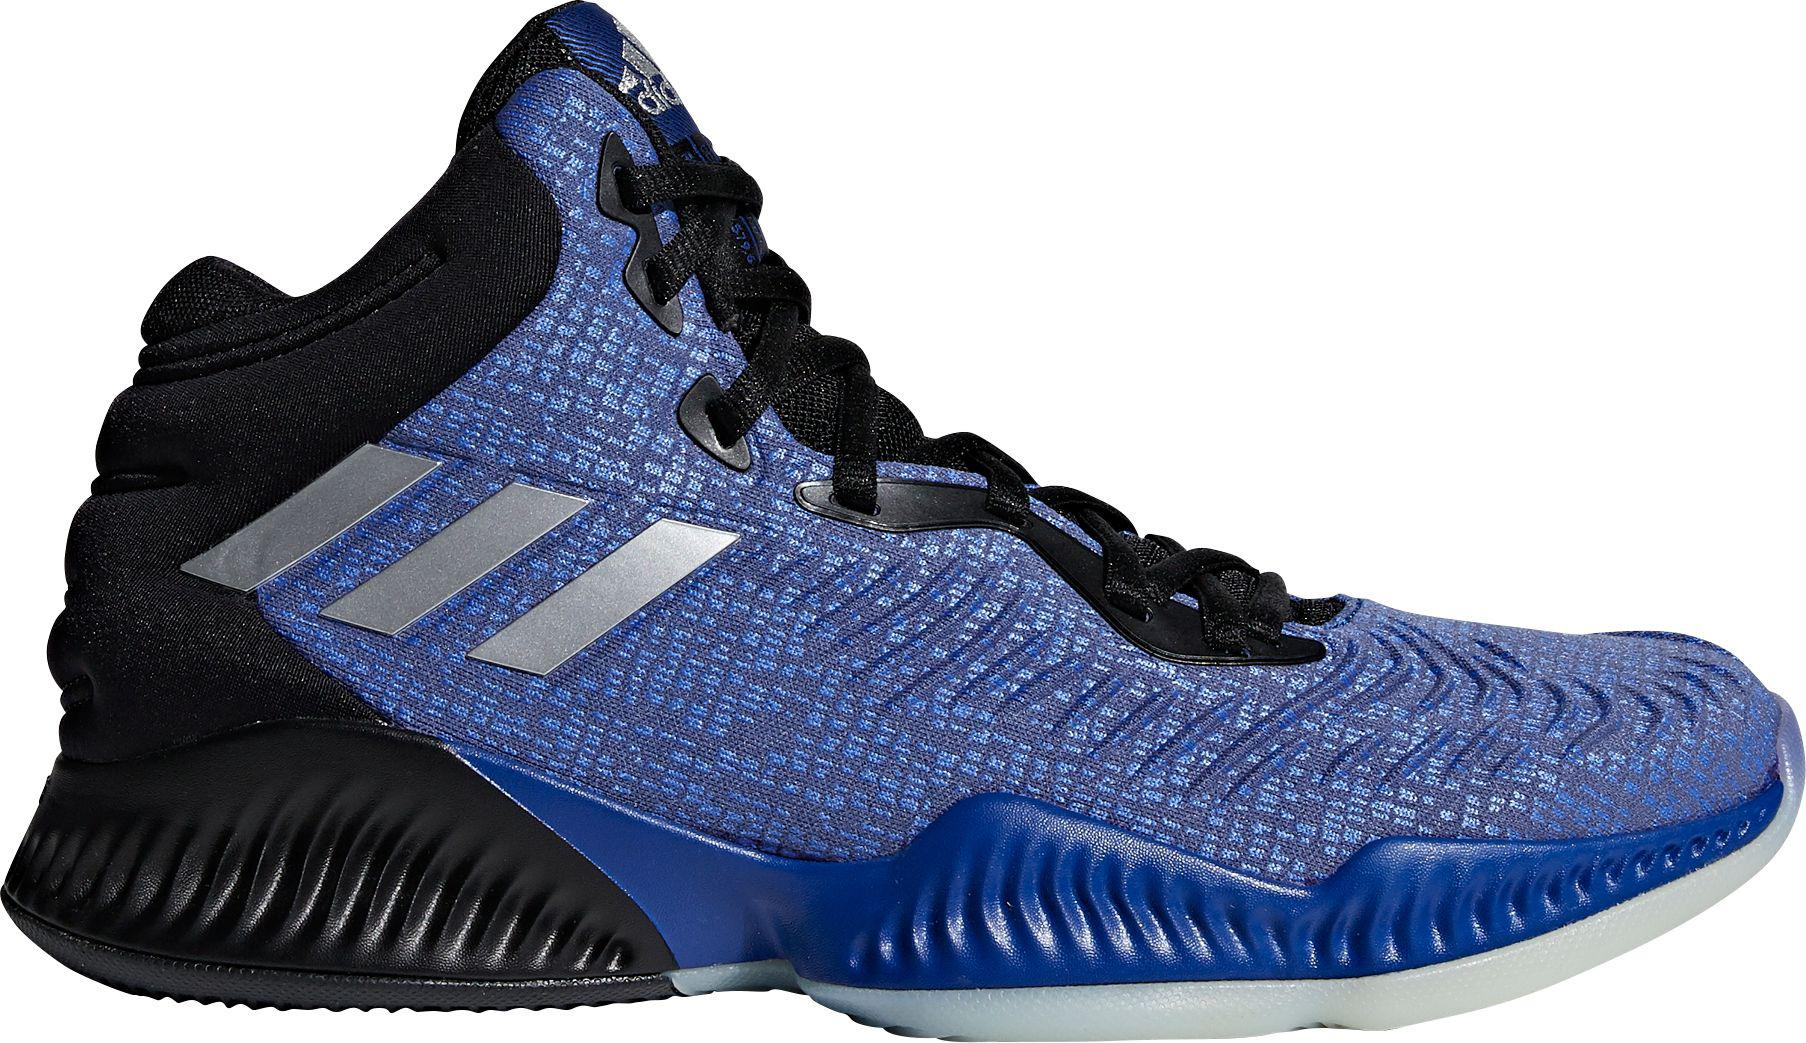 b55e5e541f5 ... new arrival 8ee6e f3c76 Adidas - Blue Mad Bounce 2018 Basketball Shoes  for Men - Lyst